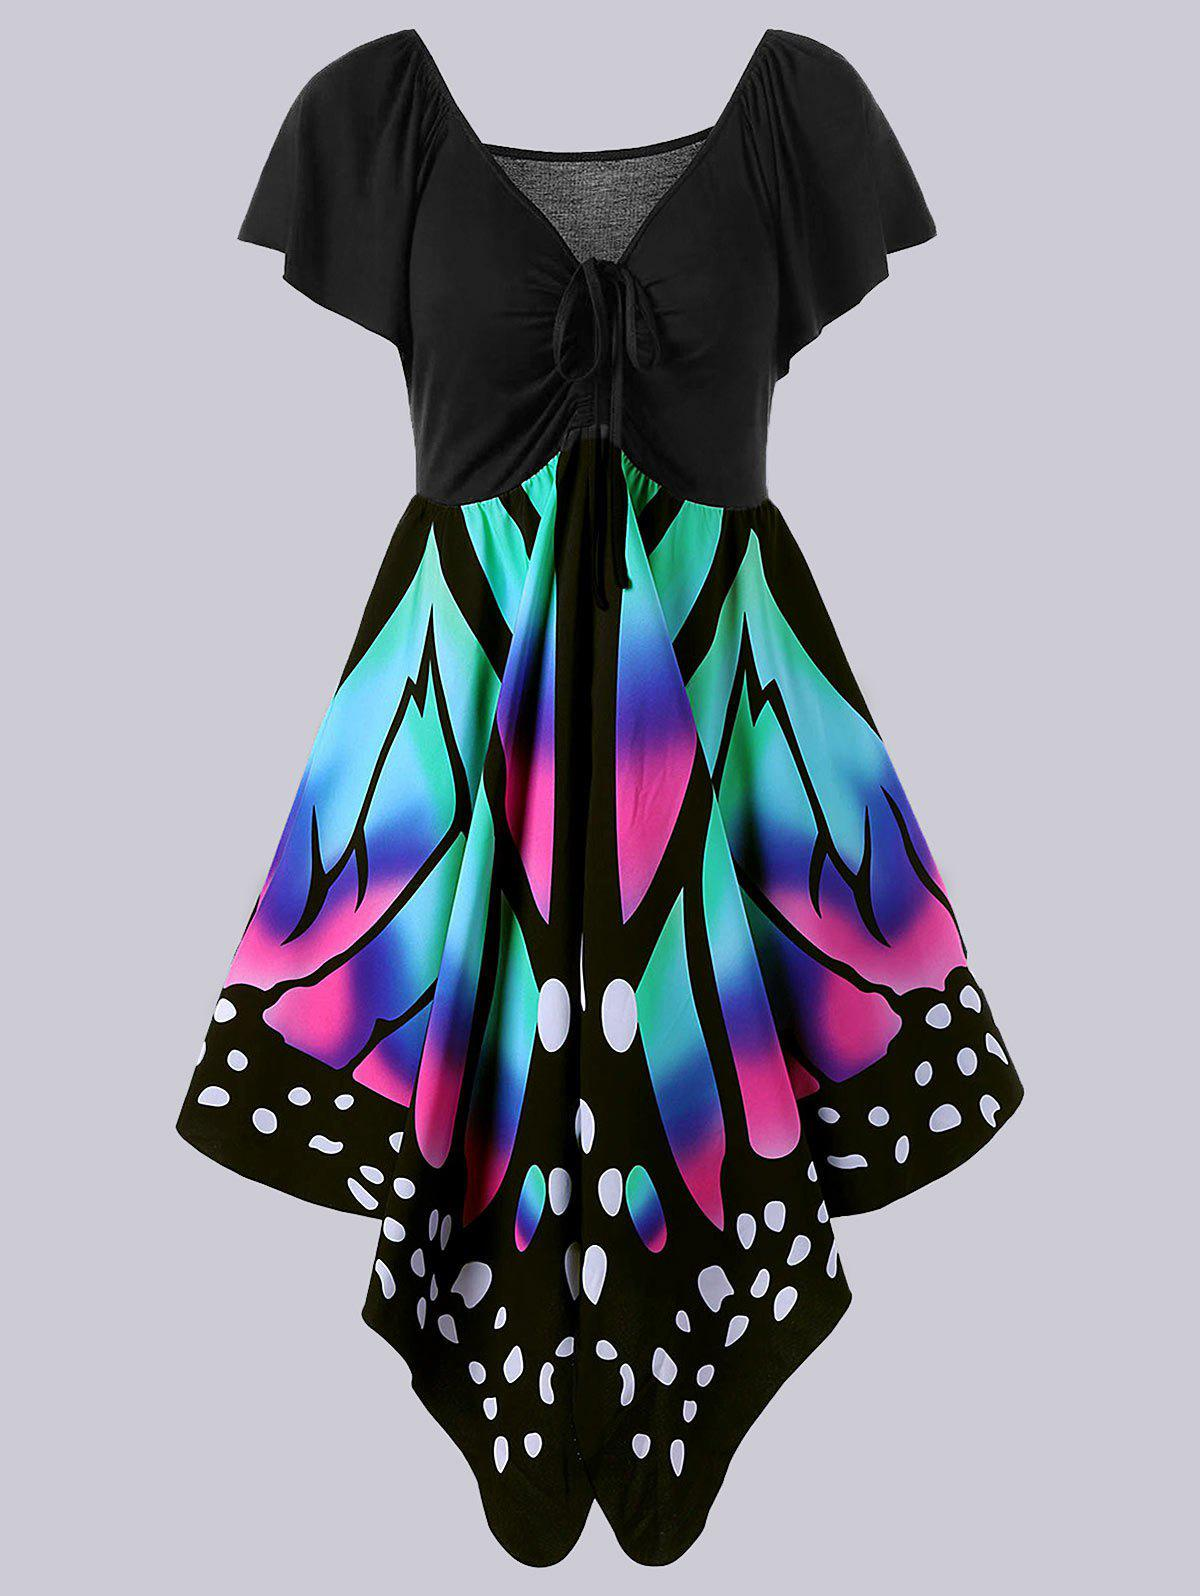 Plus Size Empire Waist Butterfly Pattern DressWOMEN<br><br>Size: 5XL; Color: BLACK AND PINK; Style: Novelty; Material: Polyester,Spandex; Silhouette: A-Line; Dresses Length: Knee-Length; Neckline: V-Neck; Sleeve Length: Short Sleeves; Pattern Type: Butterfly; With Belt: No; Season: Summer; Weight: 0.3600kg; Package Contents: 1 x Dress;